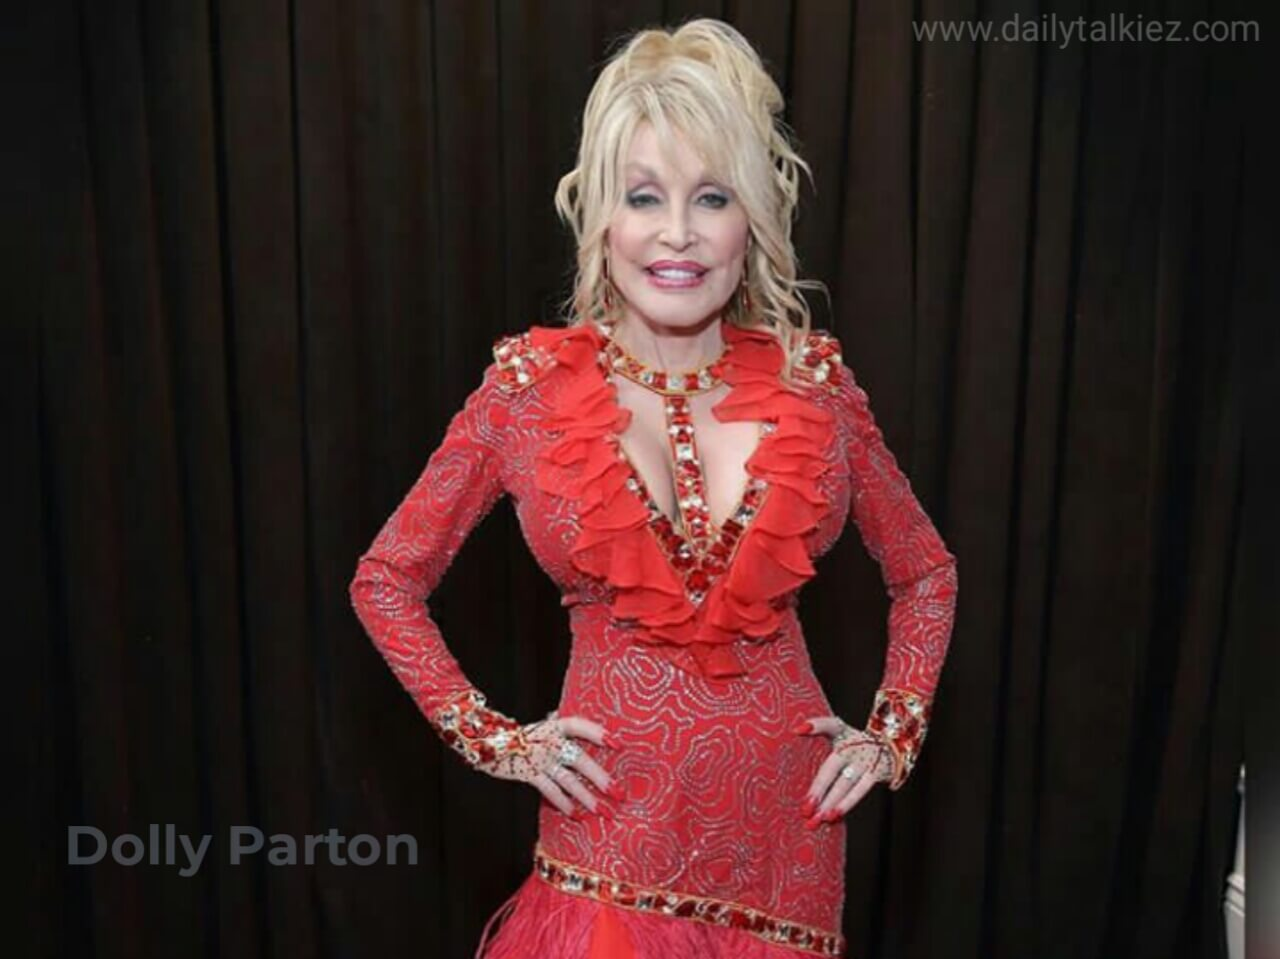 Dolly Parton Net Worth 2020 Dolly Parton Income Biography